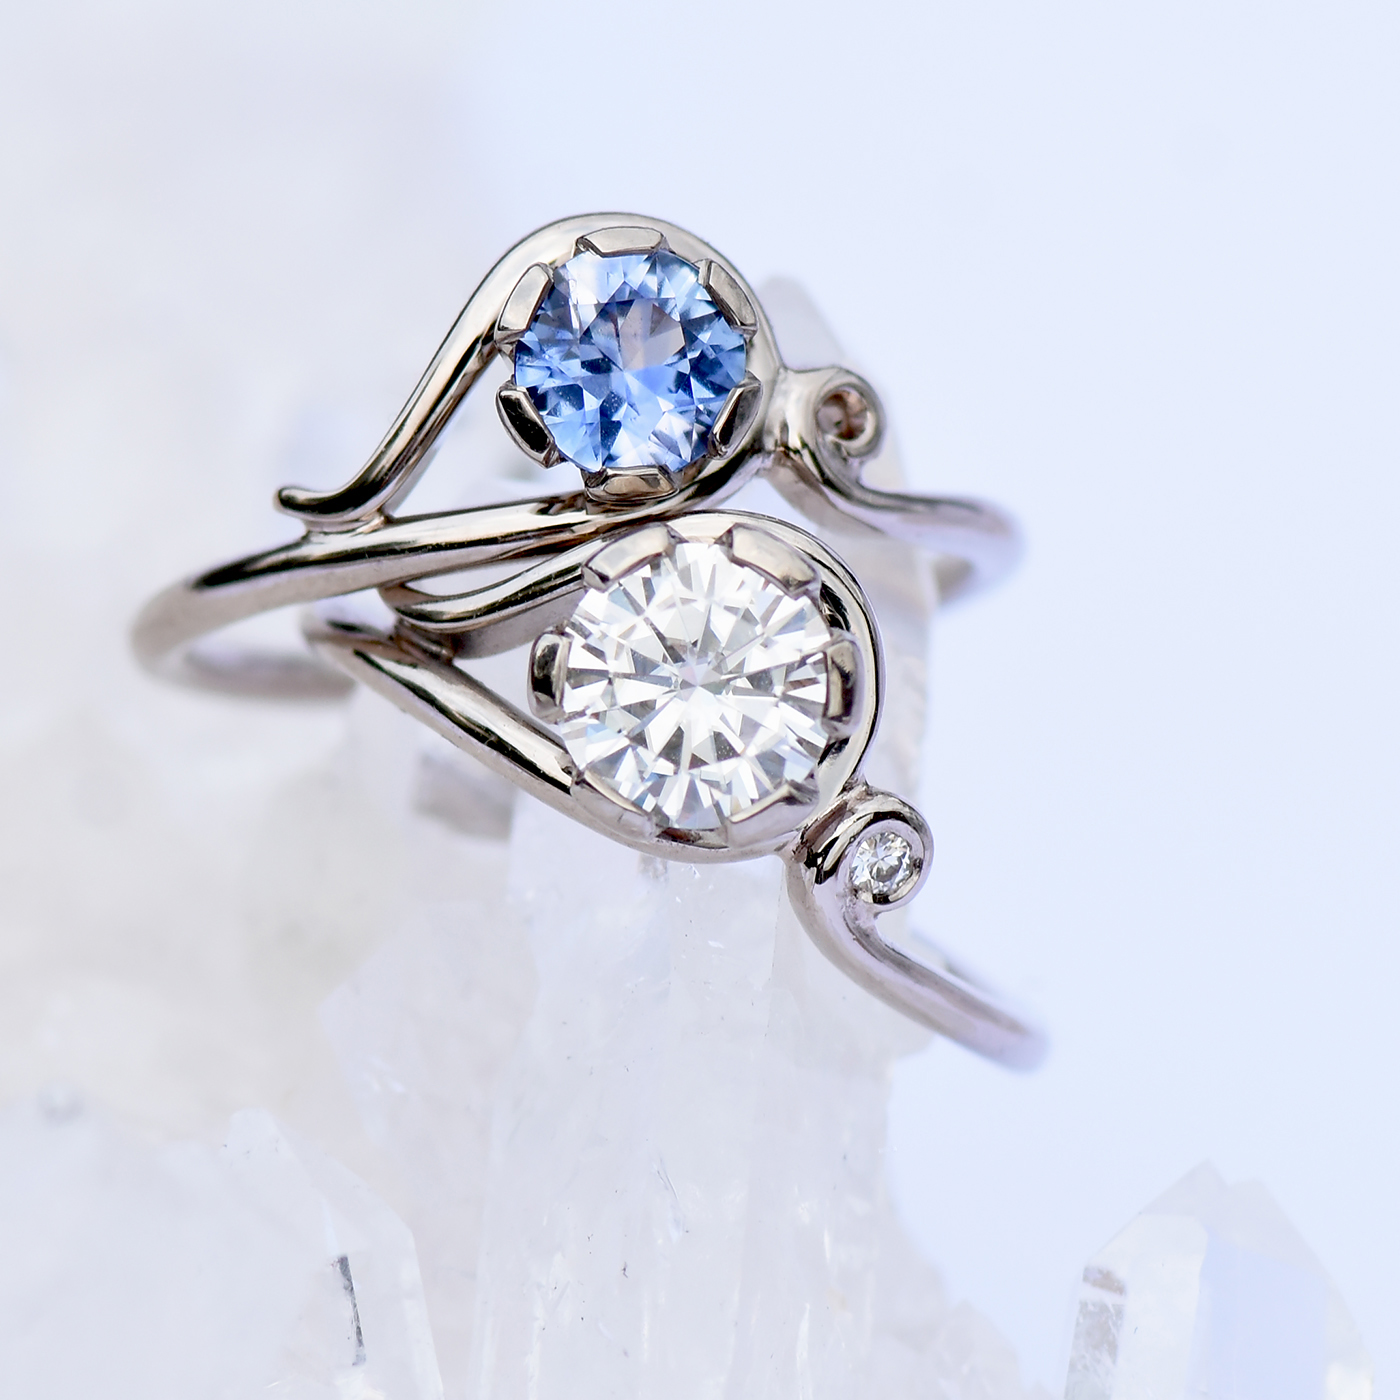 Customise the Art Nouveau ring by Lilia Nash with your choice of gold, rose, gold, white gold & platinum. Diamond, sapphire, ruby & other gemstones available.